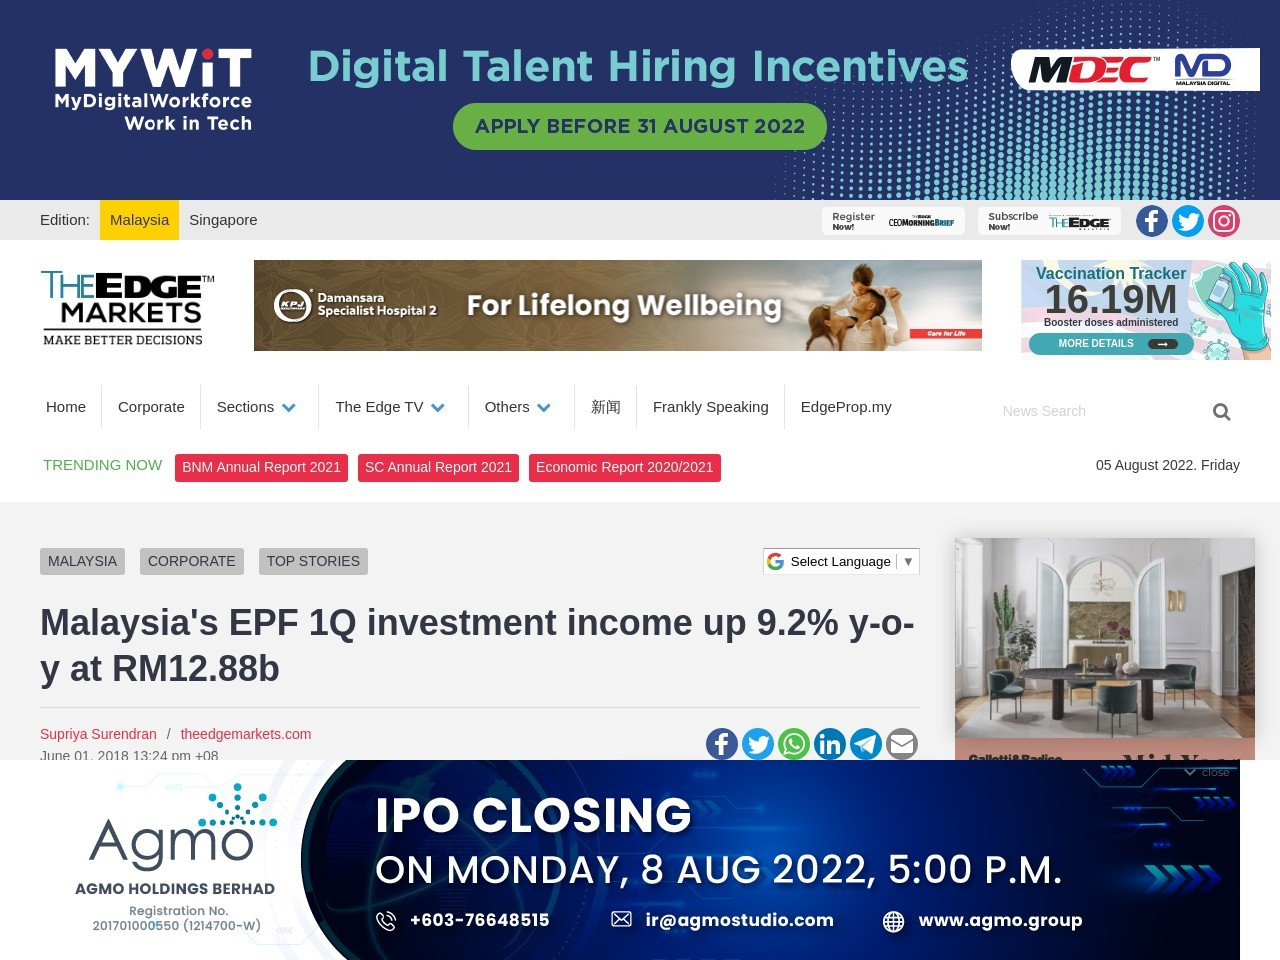 Malaysia's EPF 1Q investment income up 9.2% y-o-y at RM12.88b